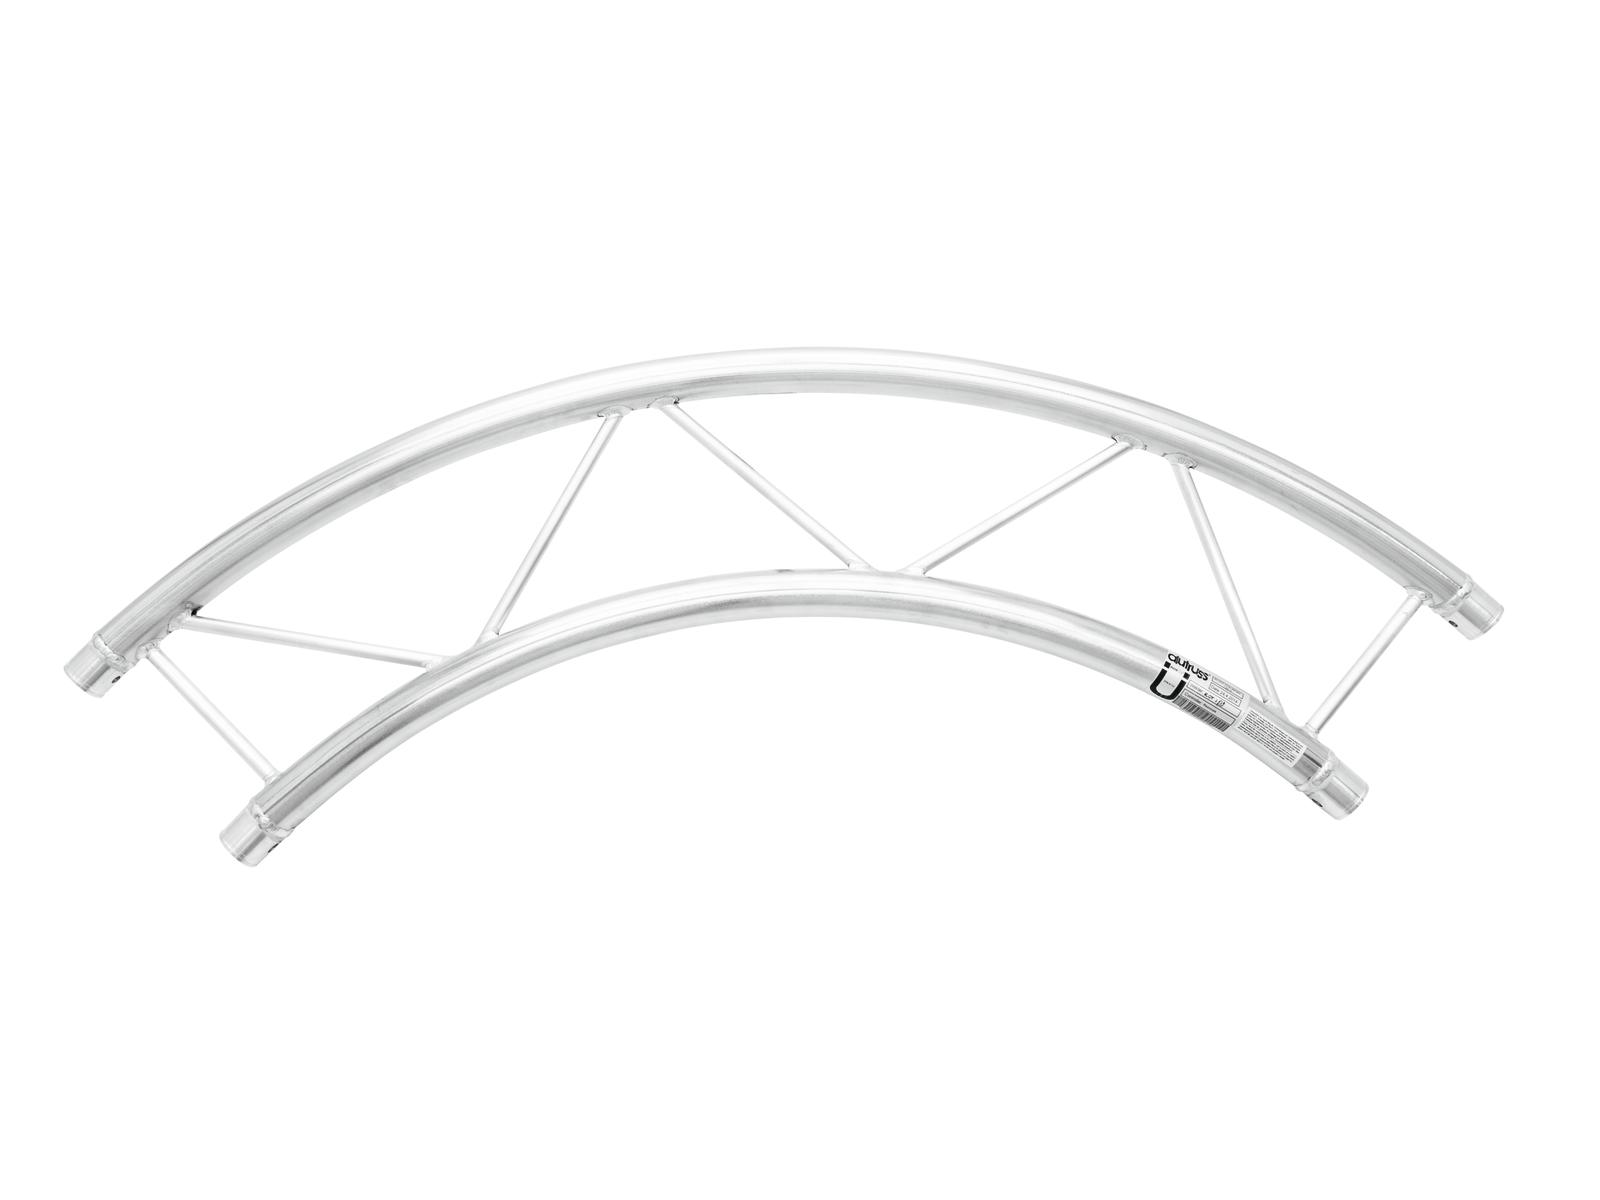 ALUTRUSS BILOCK elemento f.cer